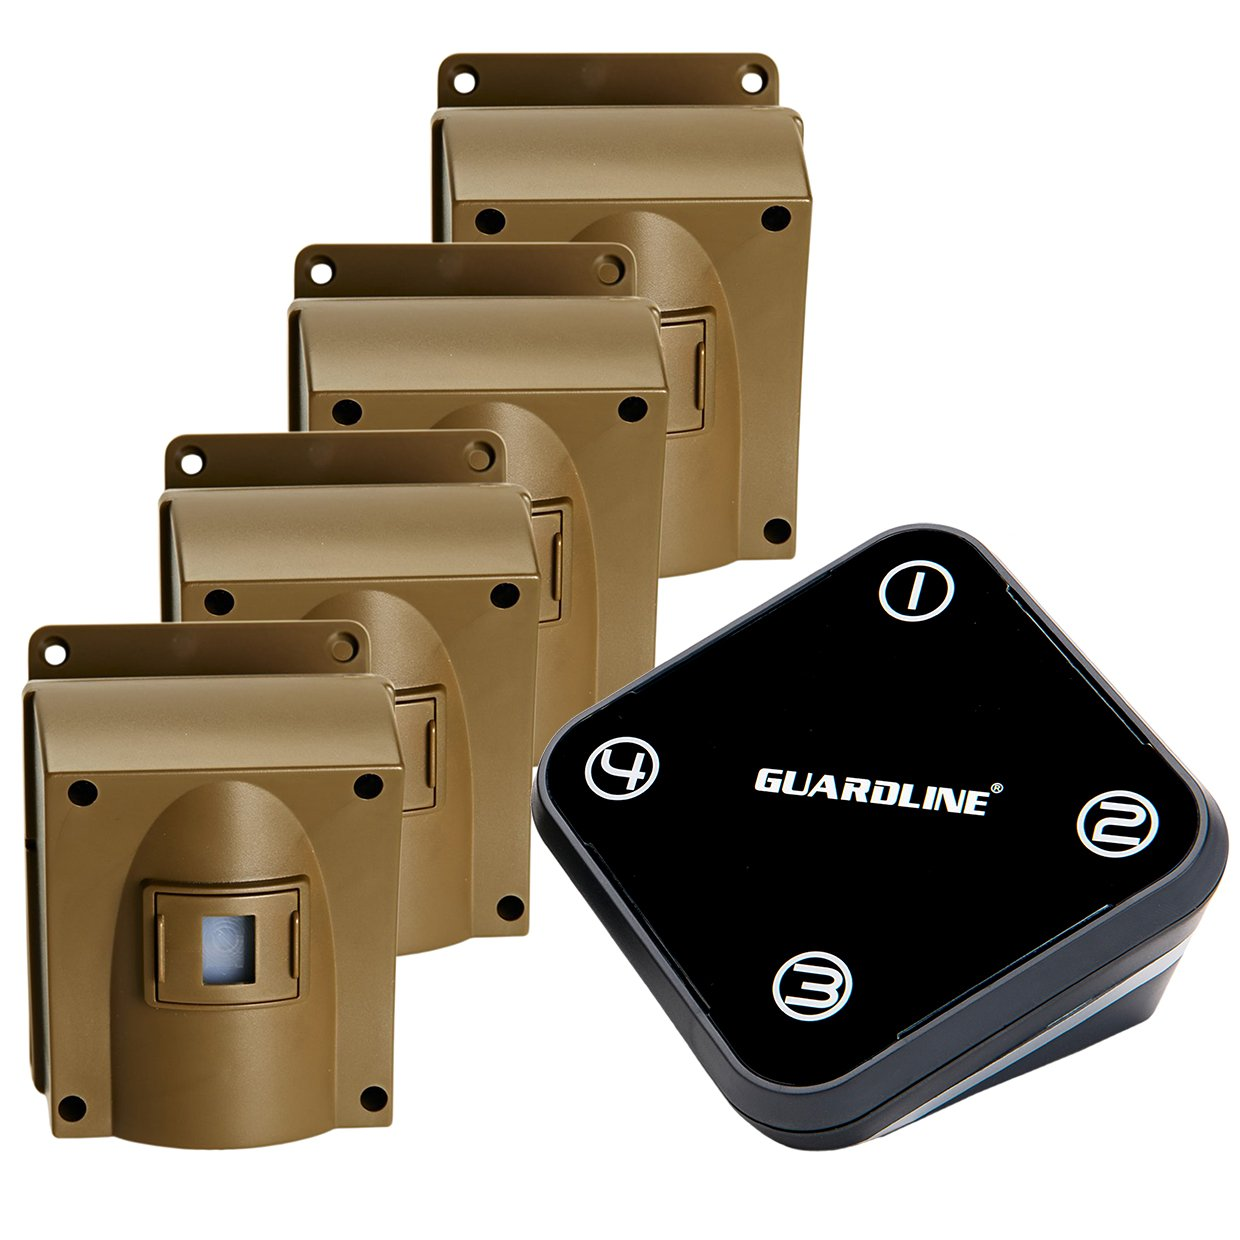 Guardline Wireless Driveway Alarm w/Four Sensors Kit Outdoor Weather Resistant Motion Sensor/Detector- Best DIY Security Alert System- Protect Home, Perimeter, Yard, Garage, Gate, Pool by Guardline